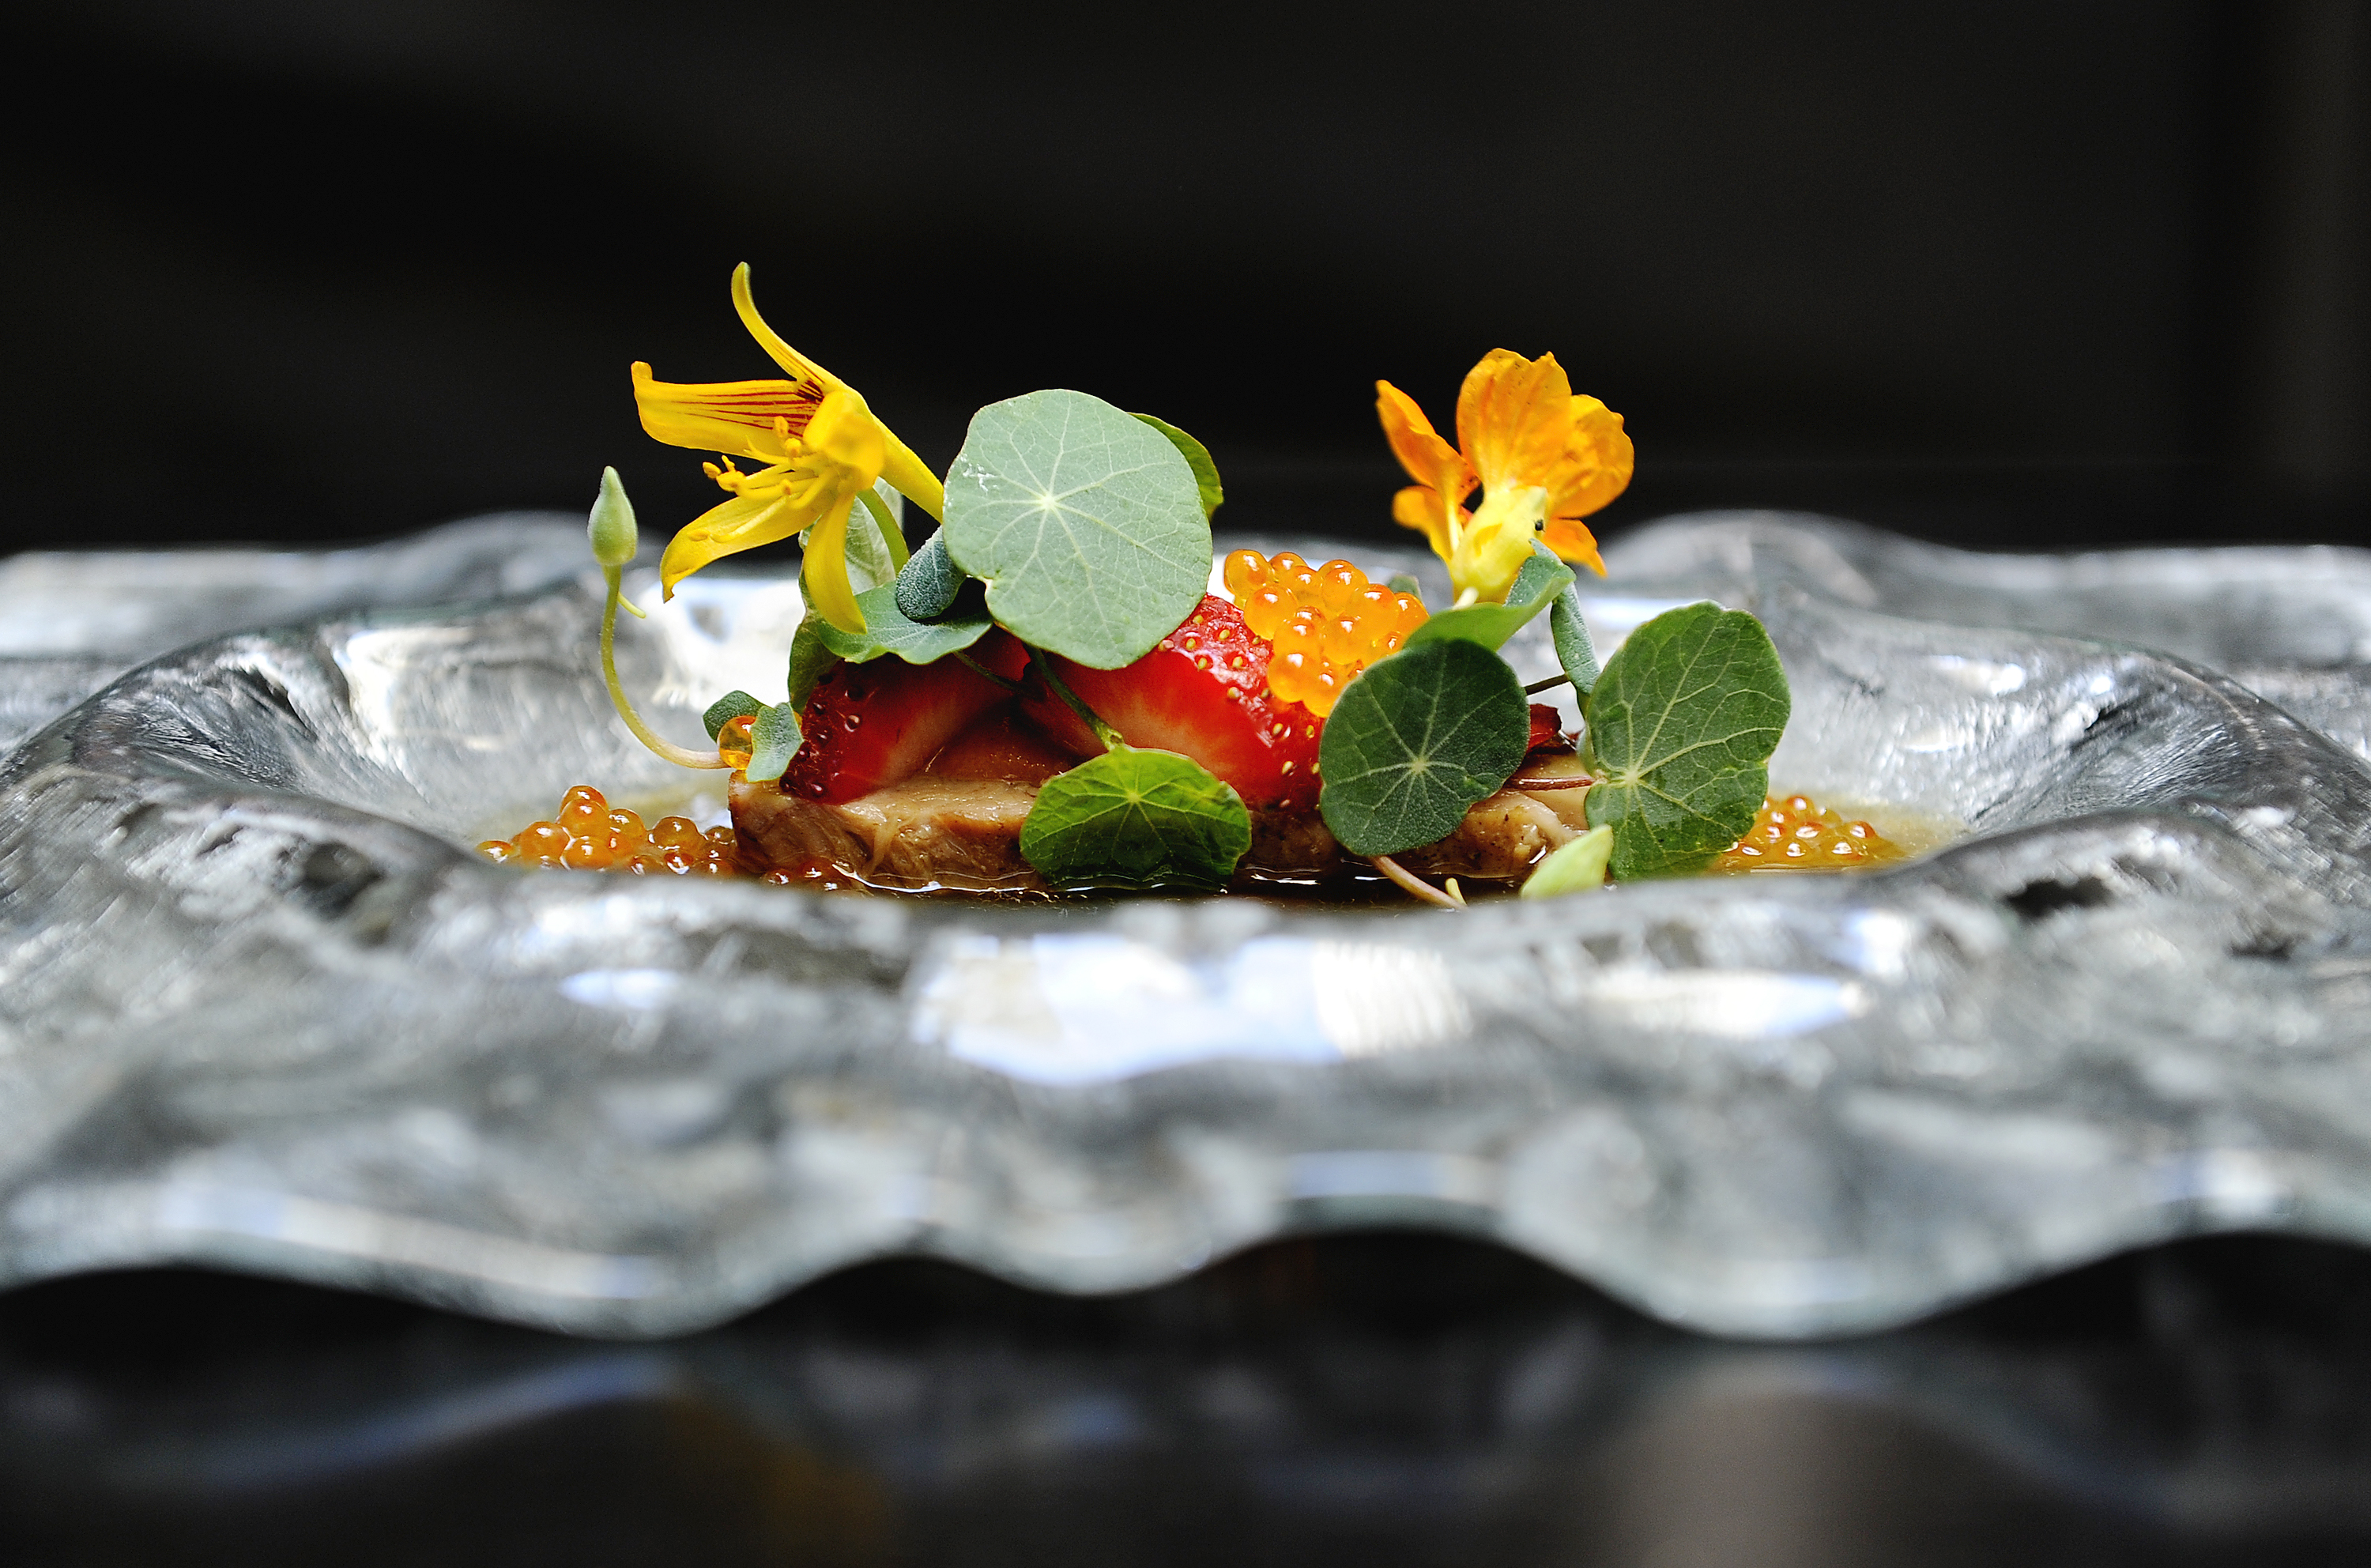 A bright fine dining dish, served on a wavy plate, with nasturtium and citrus.